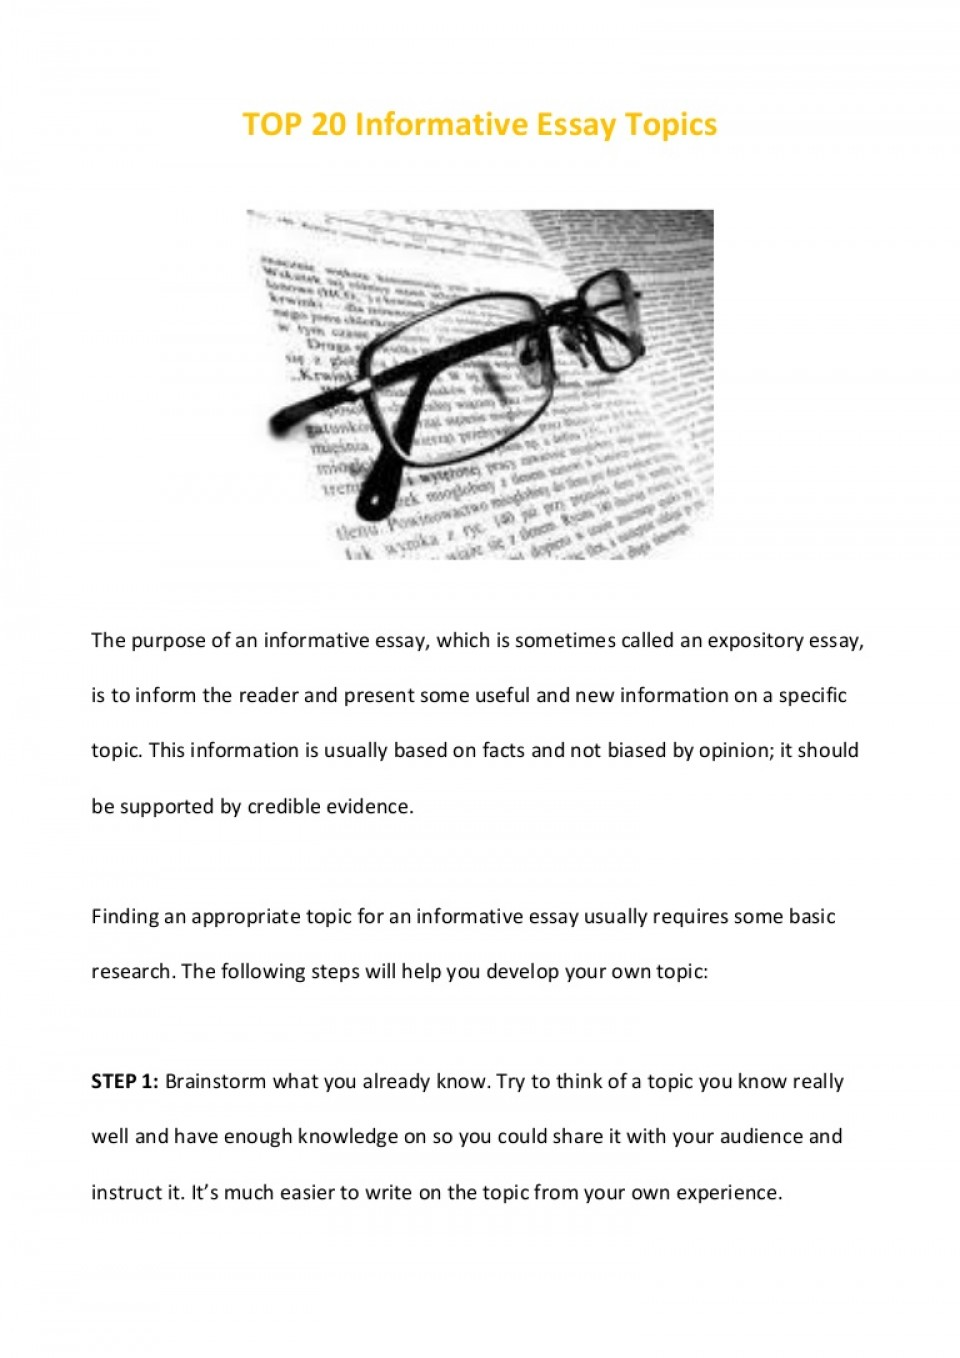 008 Essay Example Informative Ideas Top20informativeessaytopics Phpapp02 Thumbnail Wondrous Prompts Writing Topics 4th Grade Expository Middle School 960